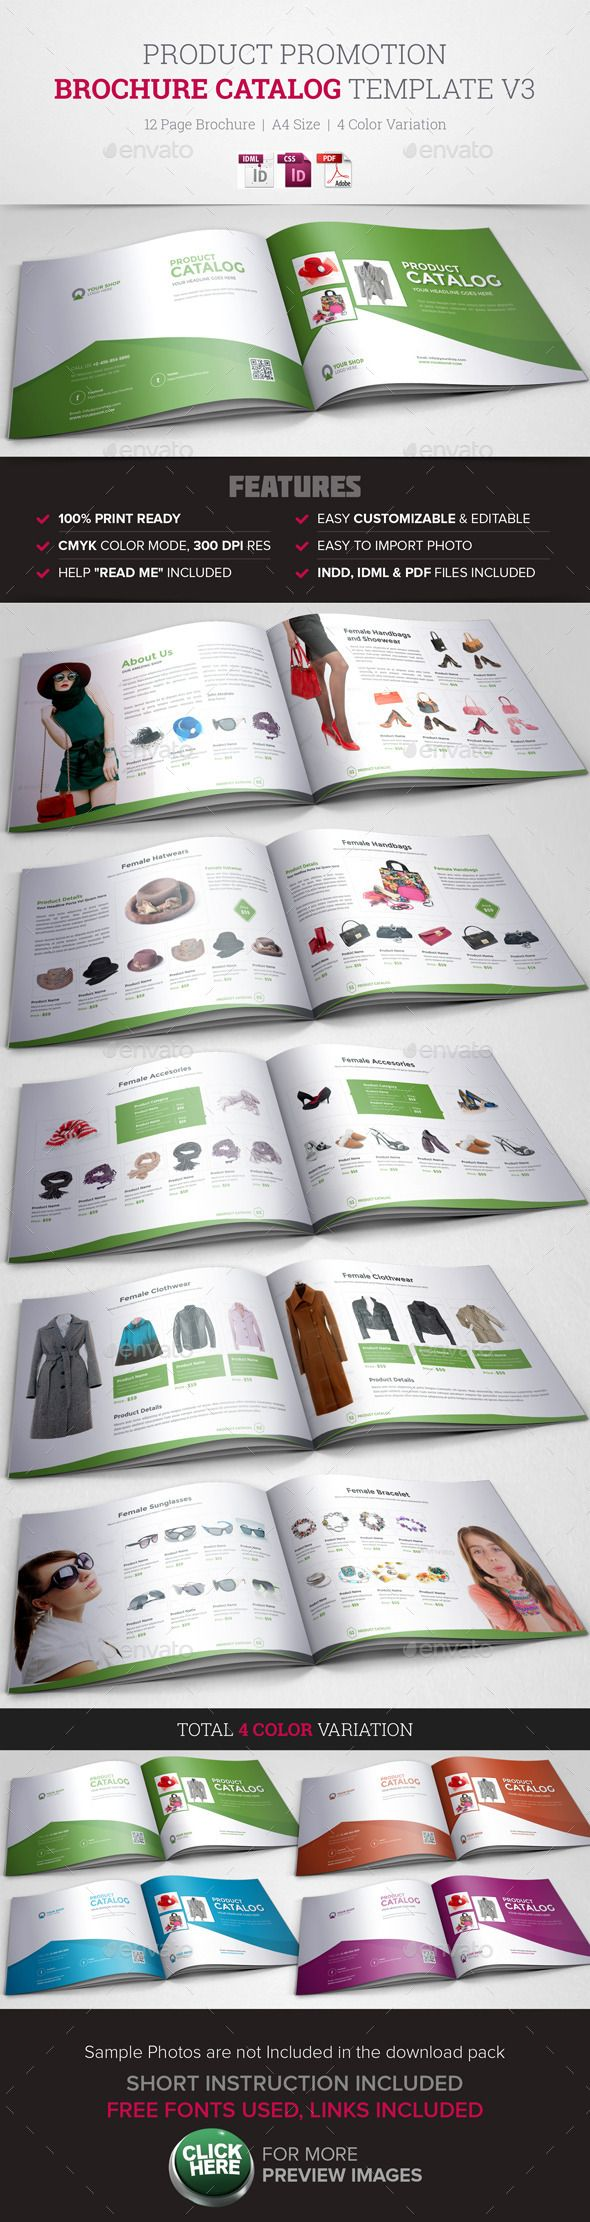 Product Promotion Catalog InDesign Template #design #brochure Download: http://graphicriver.net/item/product-promotion-catalog-indesign-template-v3/11410095?ref=ksioks